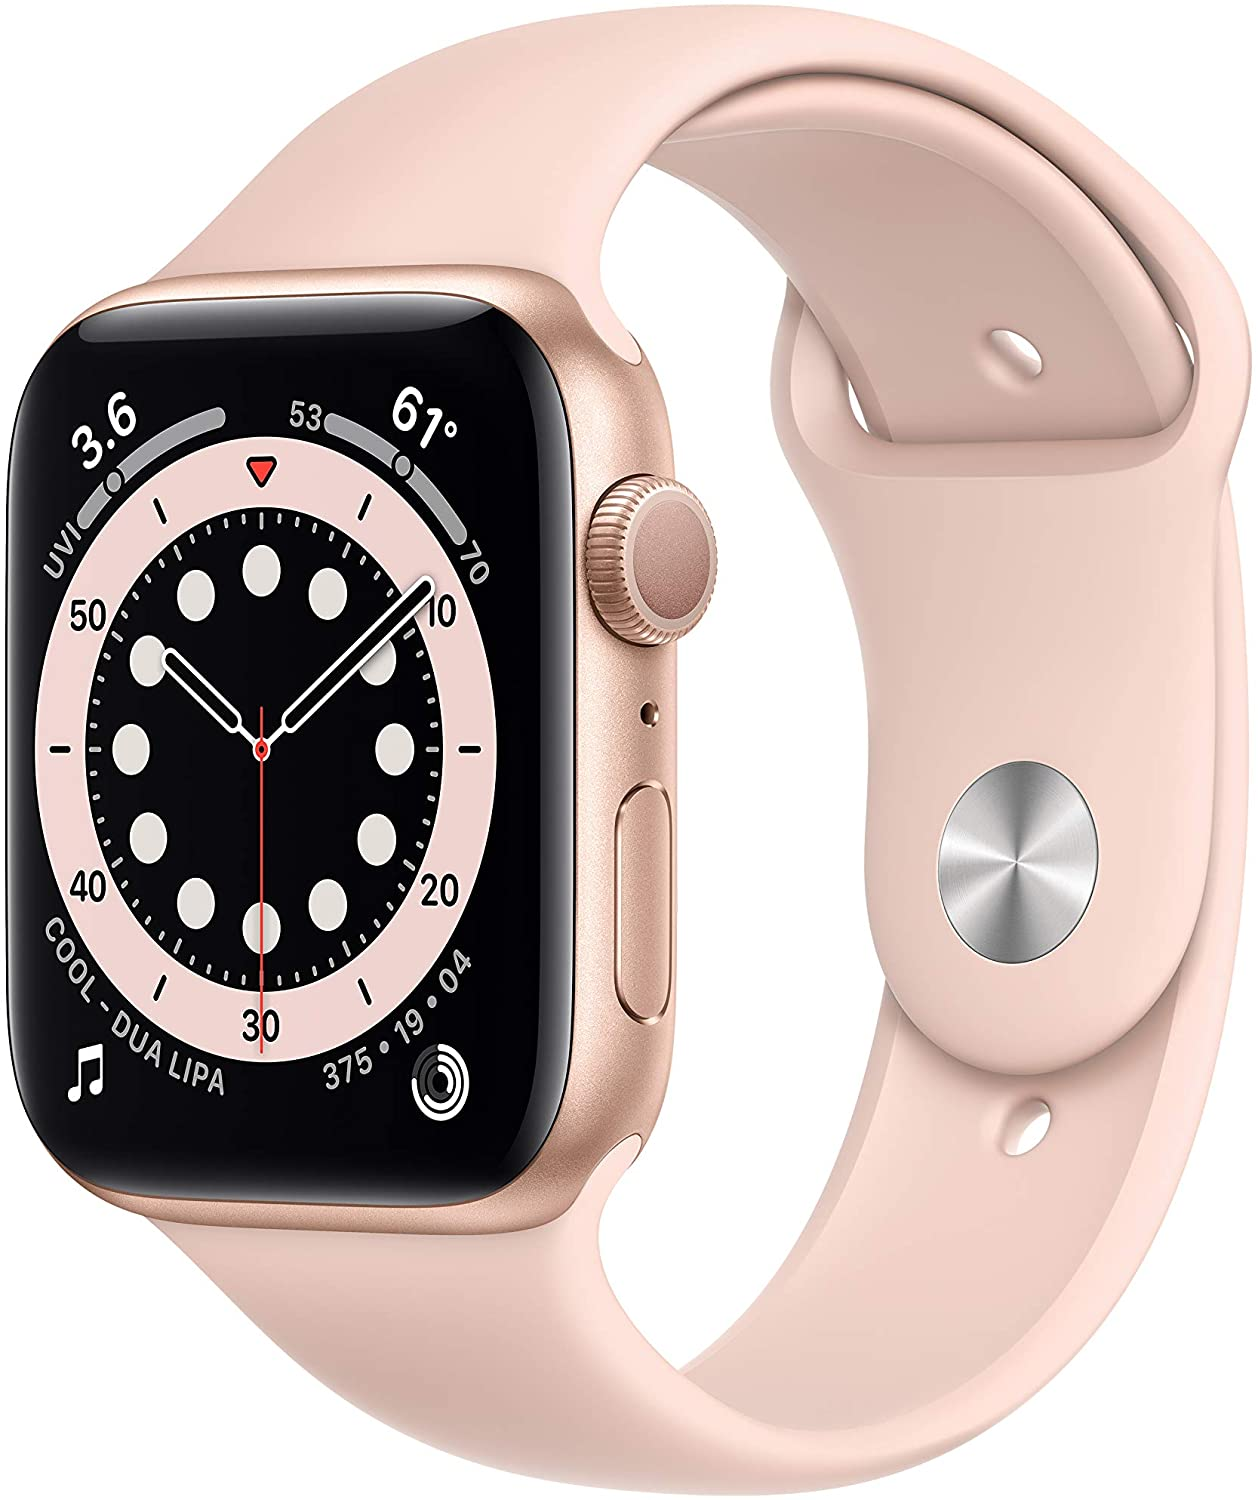 gifts-for-7th-anniversary-apple-watch